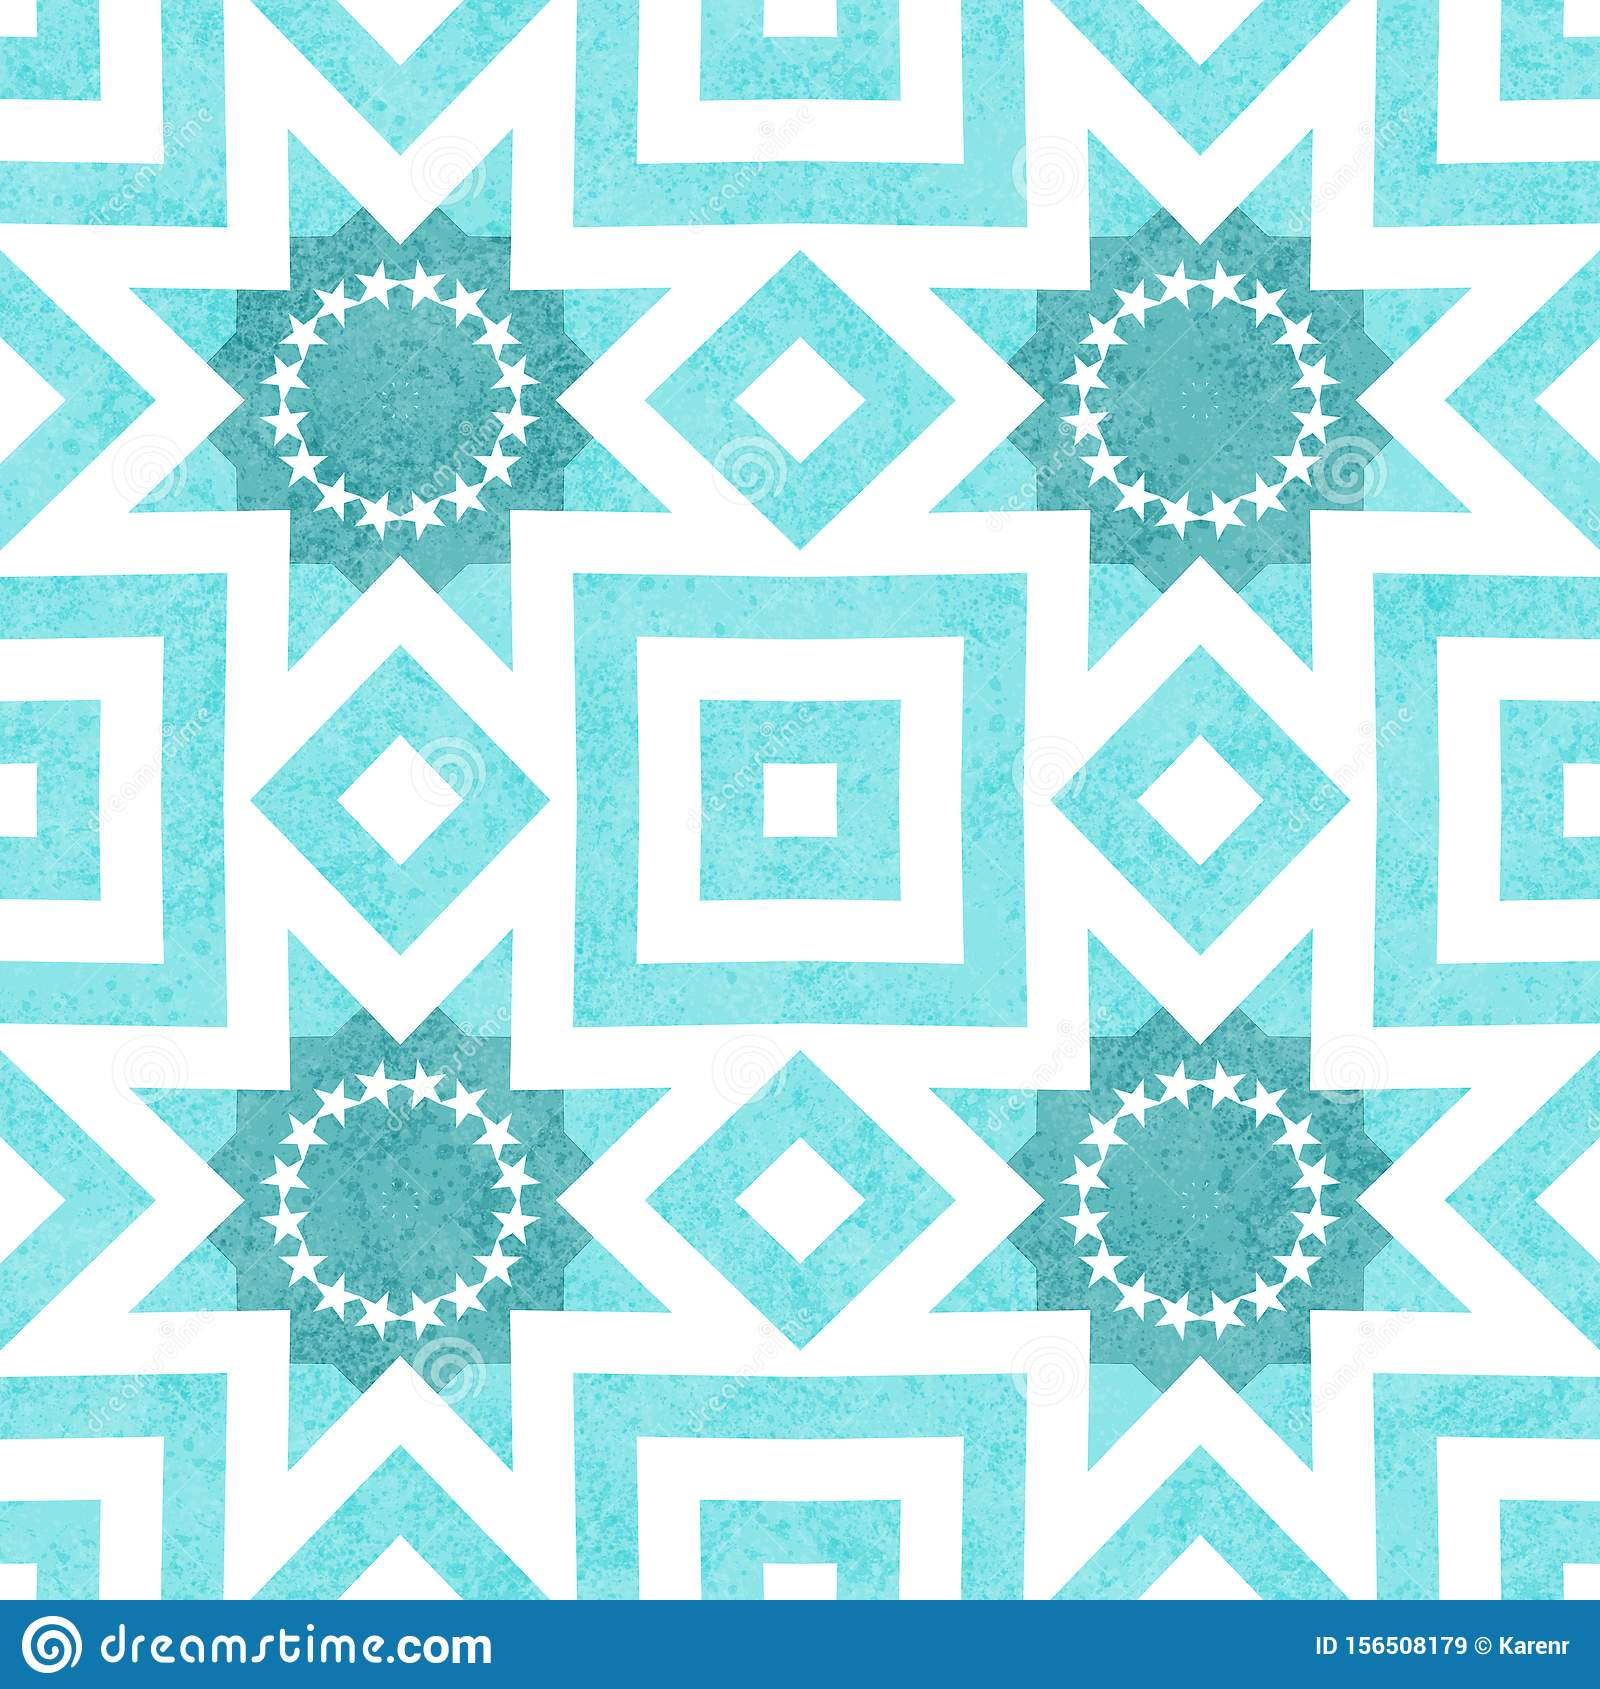 Teal and white burst abstract geometric seamless textured pattern background